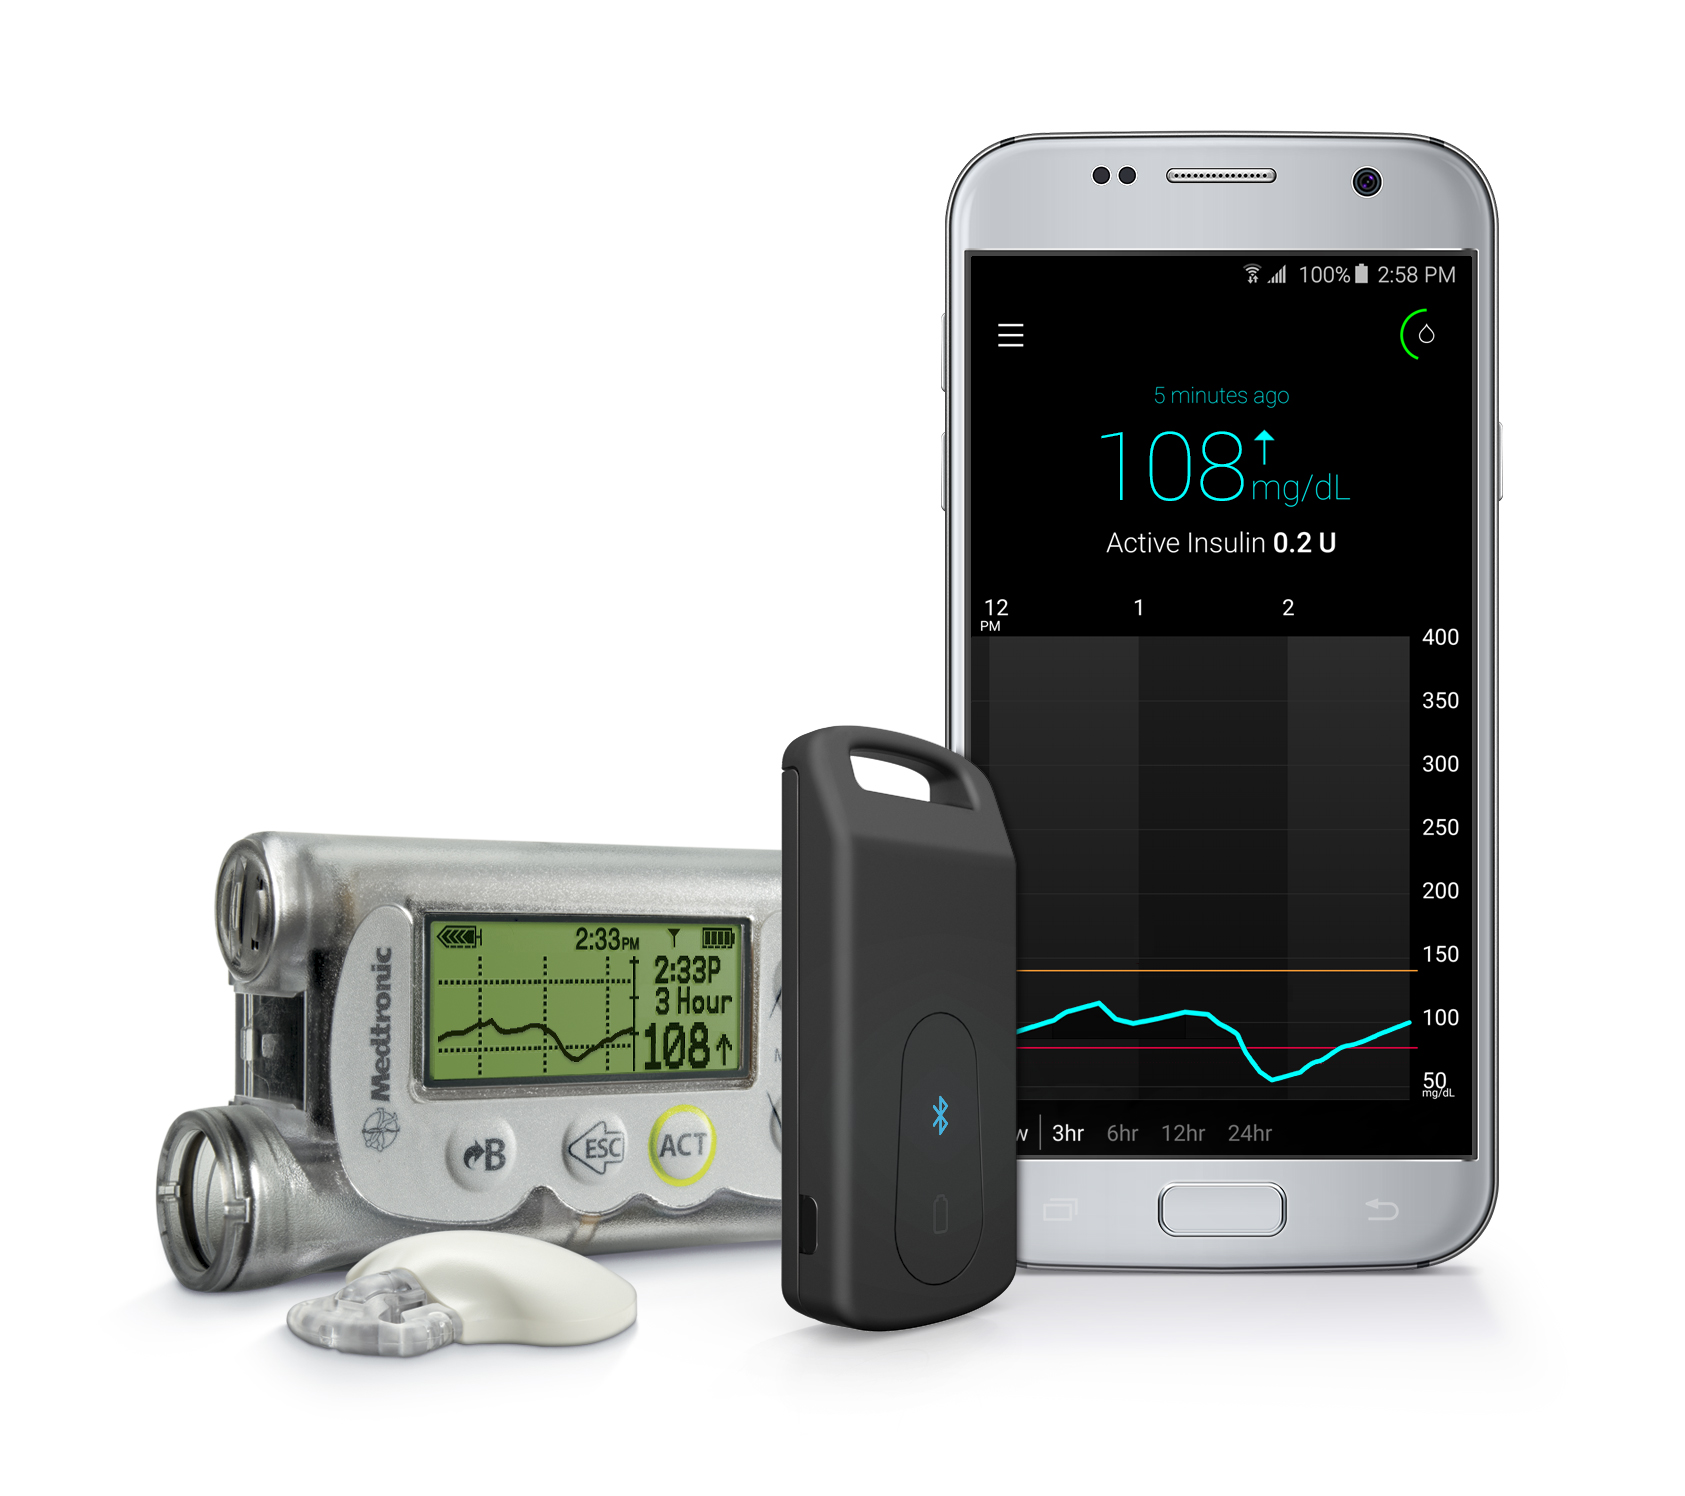 Medtronic announced U.S. commercial availability of its MiniMed Connect mobile accessory for Android